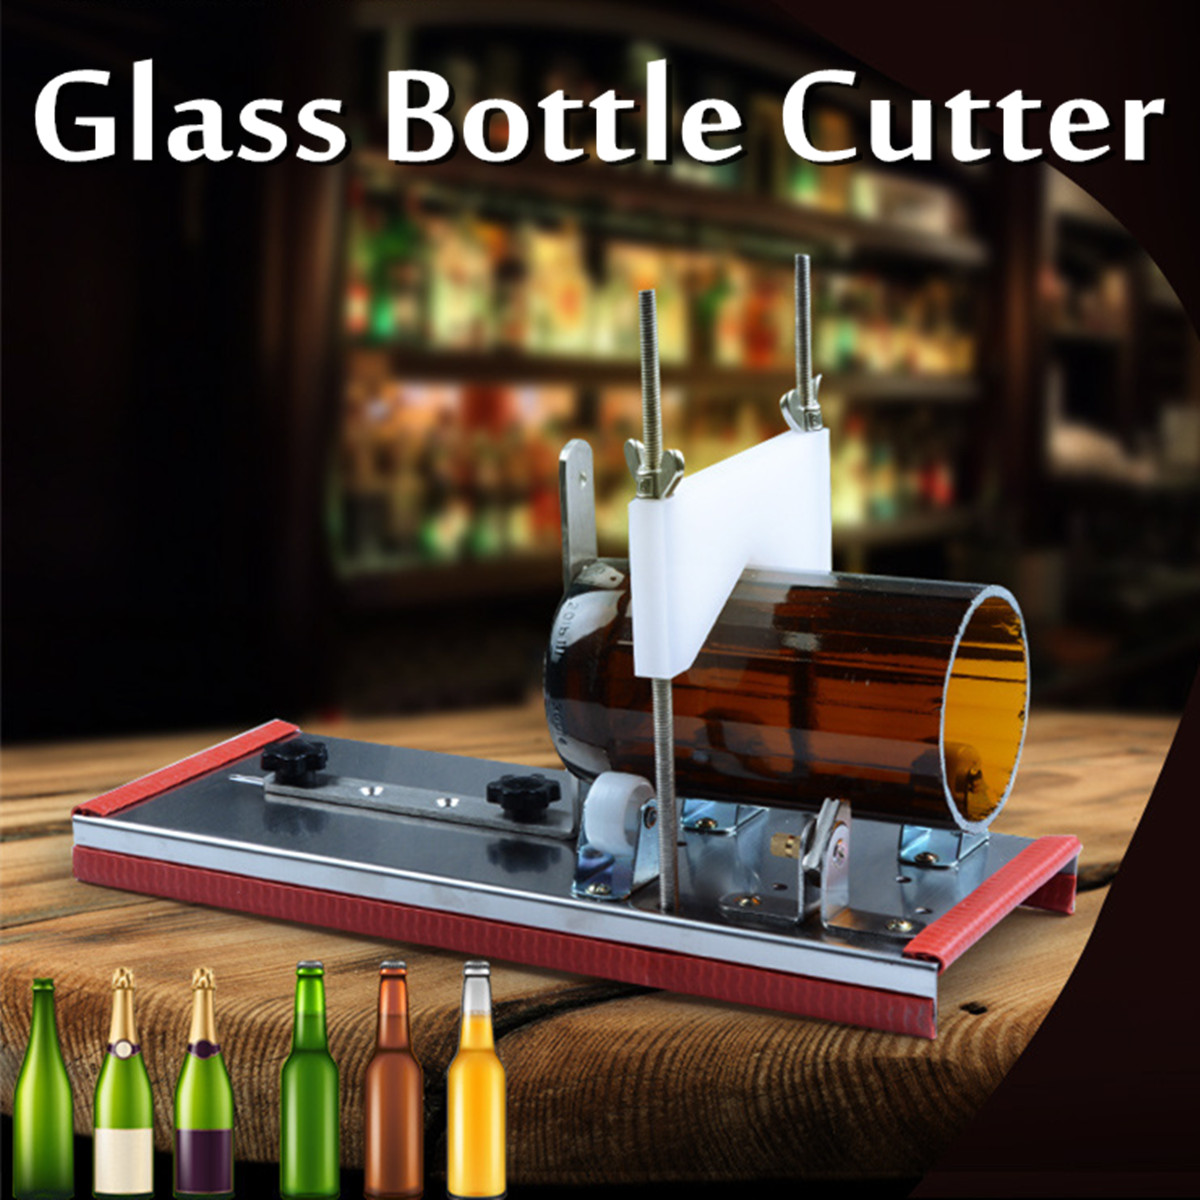 Cutting Tool Kit Glass Bottle Cutter DIY Recycle 2-10mm Beer Wine Jar Accurate Cutting Machine Stainless Steel Smoothly Cutting diy carbon steel oval frame cutting dies